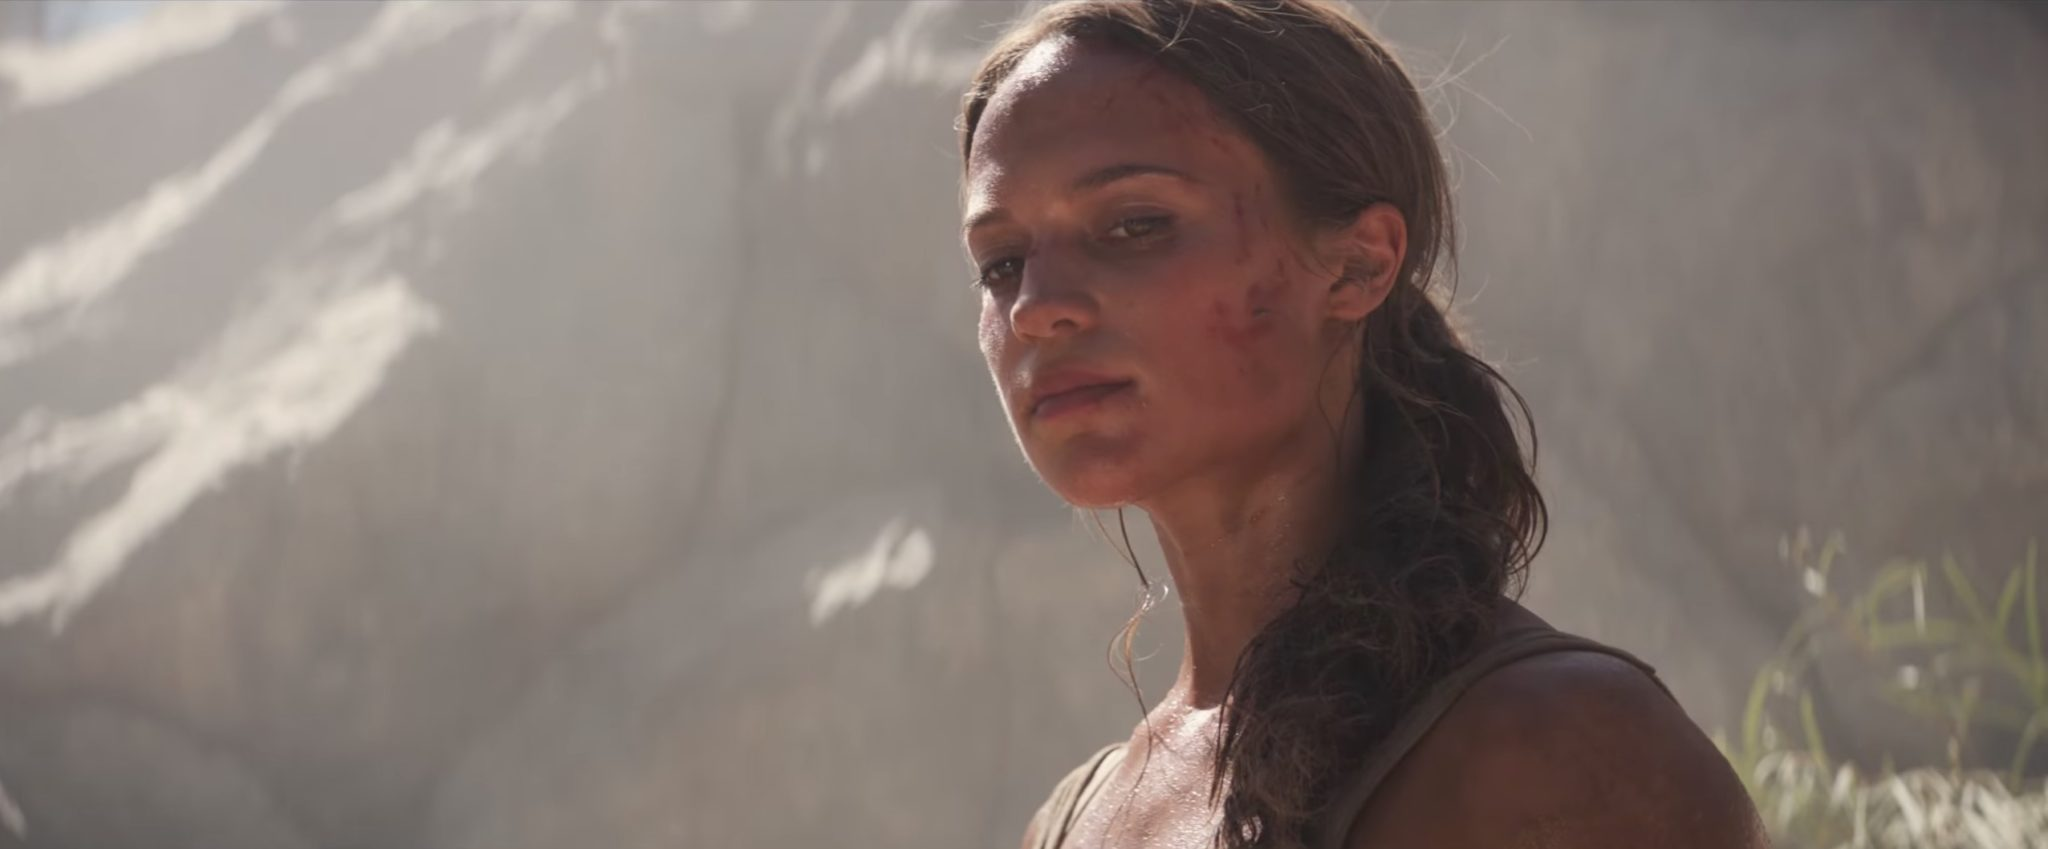 Action, puzzles, and adventure abound in first trailer for 'Tomb Raider'